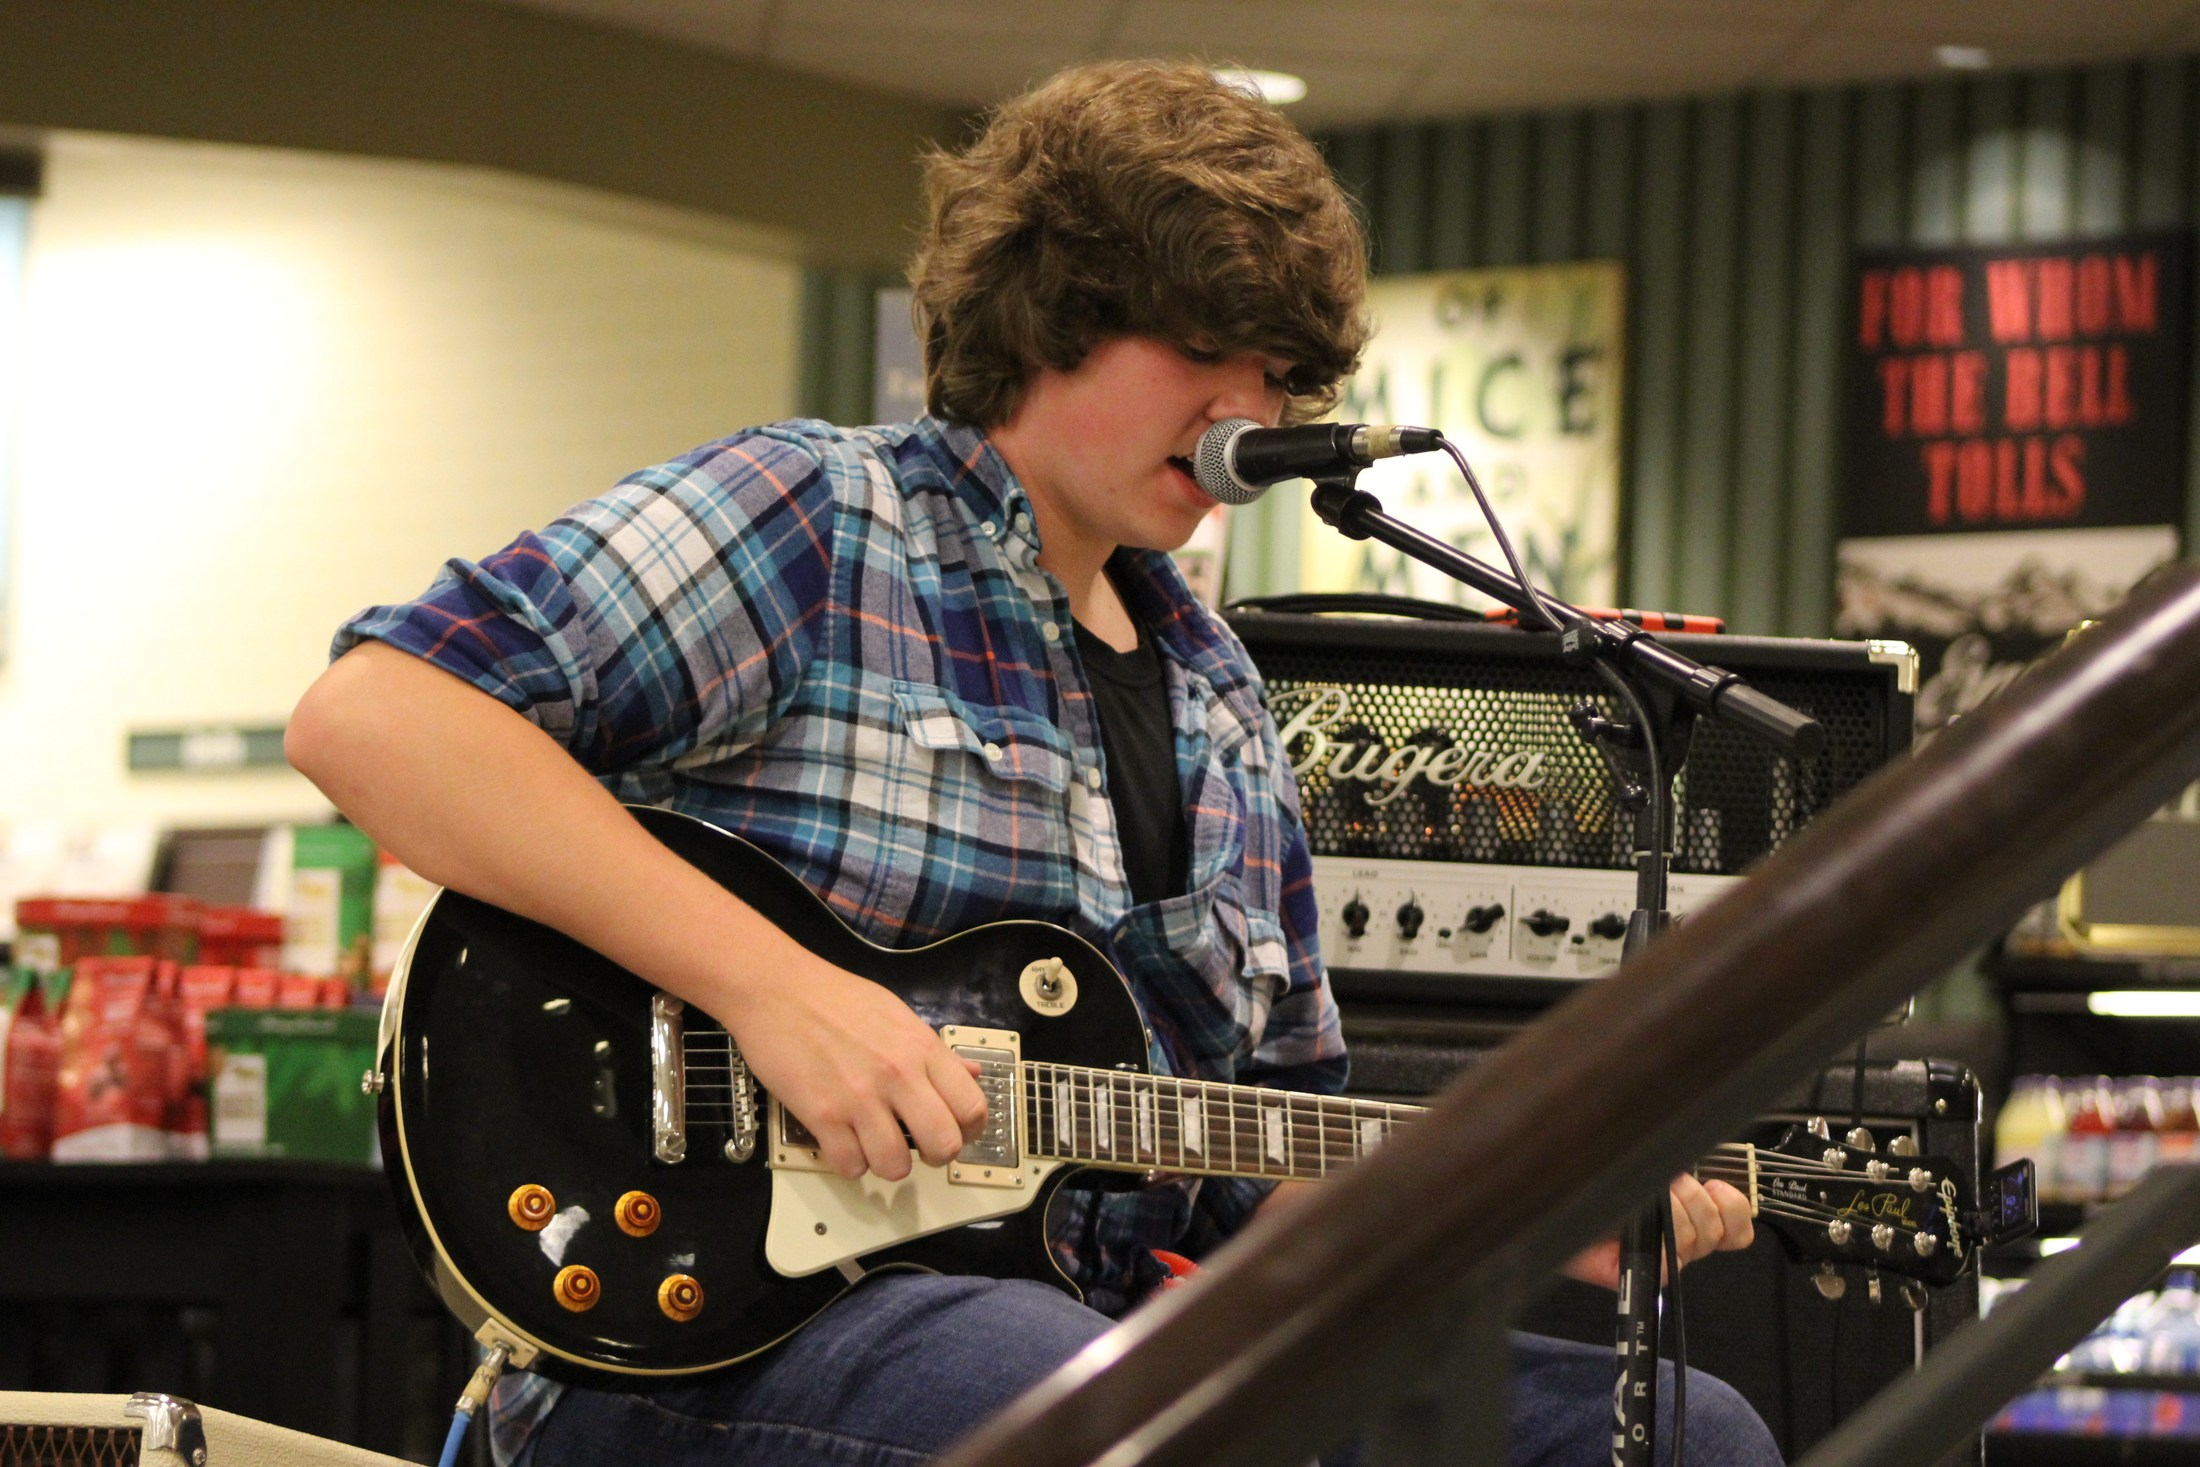 Zach masters plays his guitar at the rock ensemble showcase during barnes and noble night.